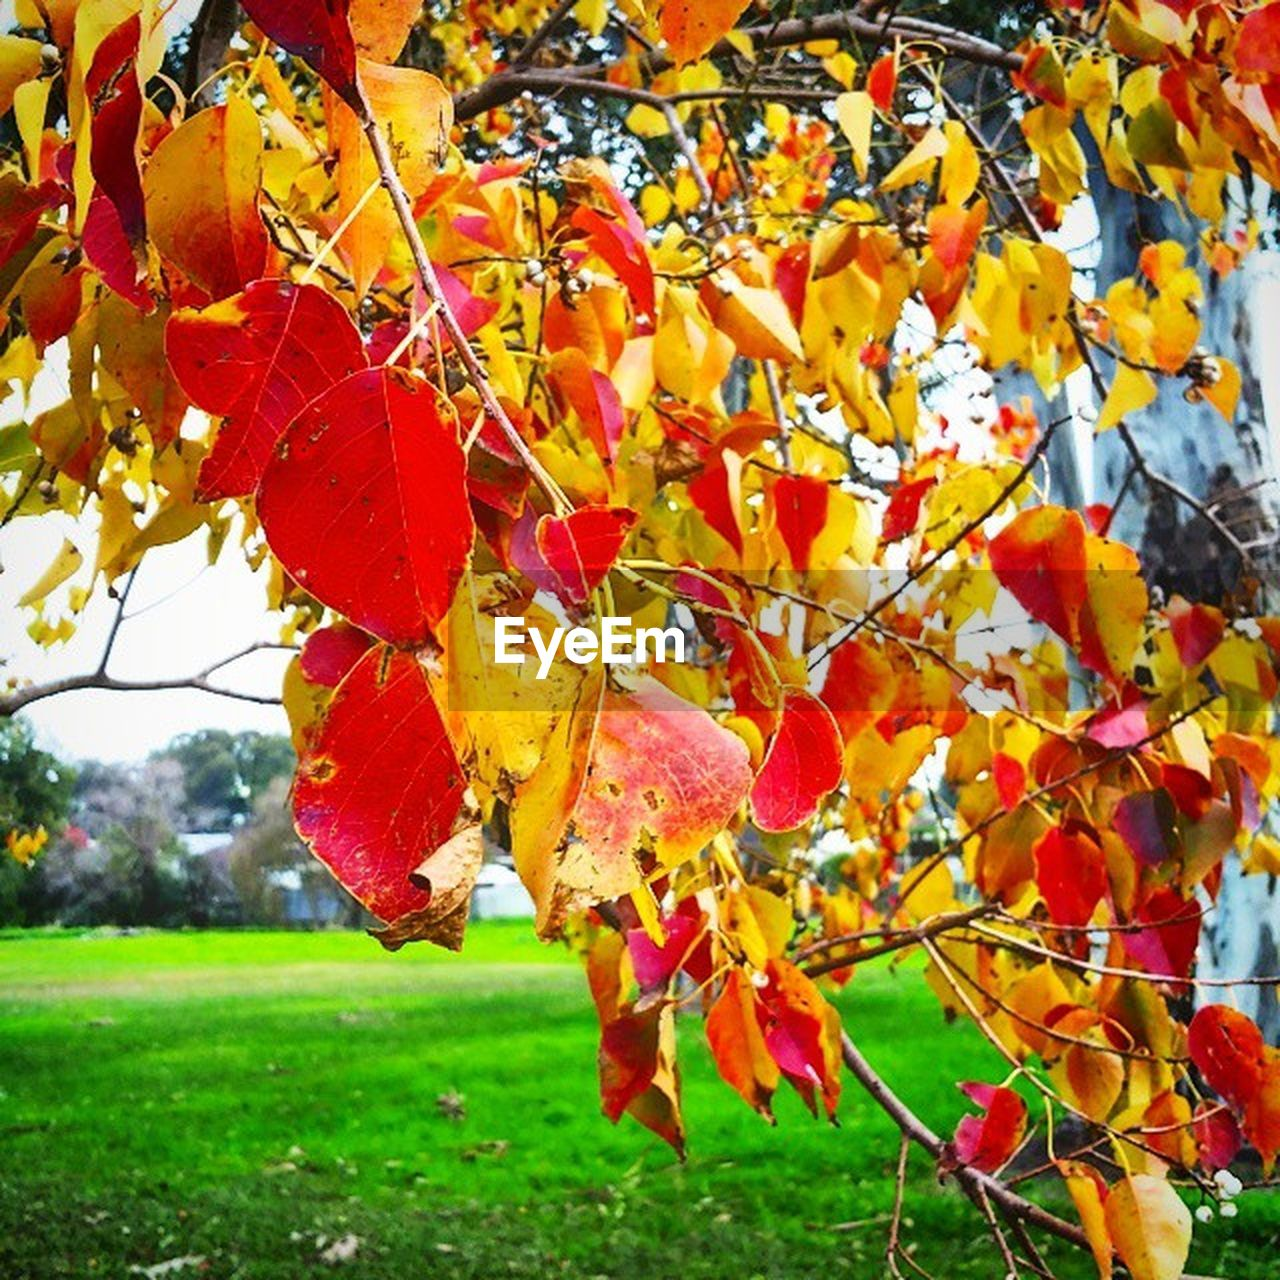 autumn, leaf, change, nature, day, outdoors, beauty in nature, tree, growth, focus on foreground, no people, maple leaf, scenics, close-up, tranquility, branch, maple, grass, fragility, sky, freshness